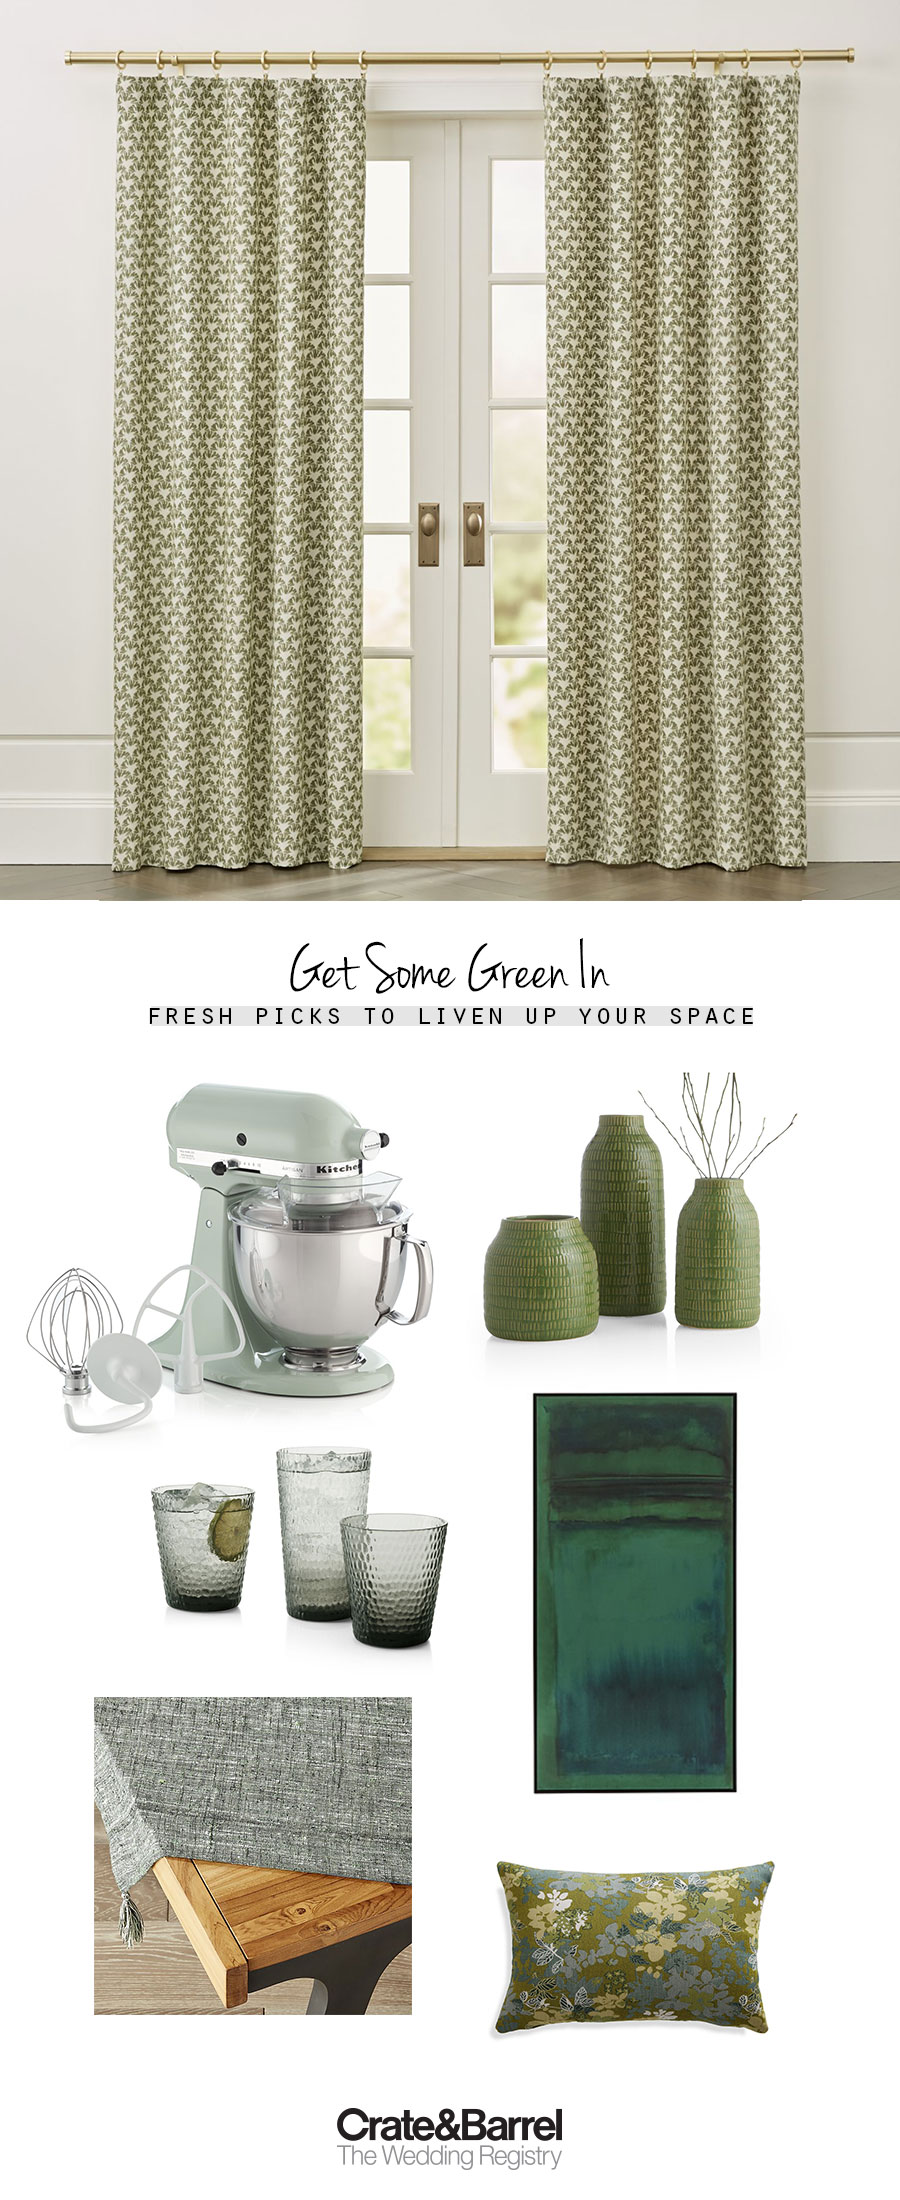 crate and barrel the wedding registry green botanical picks